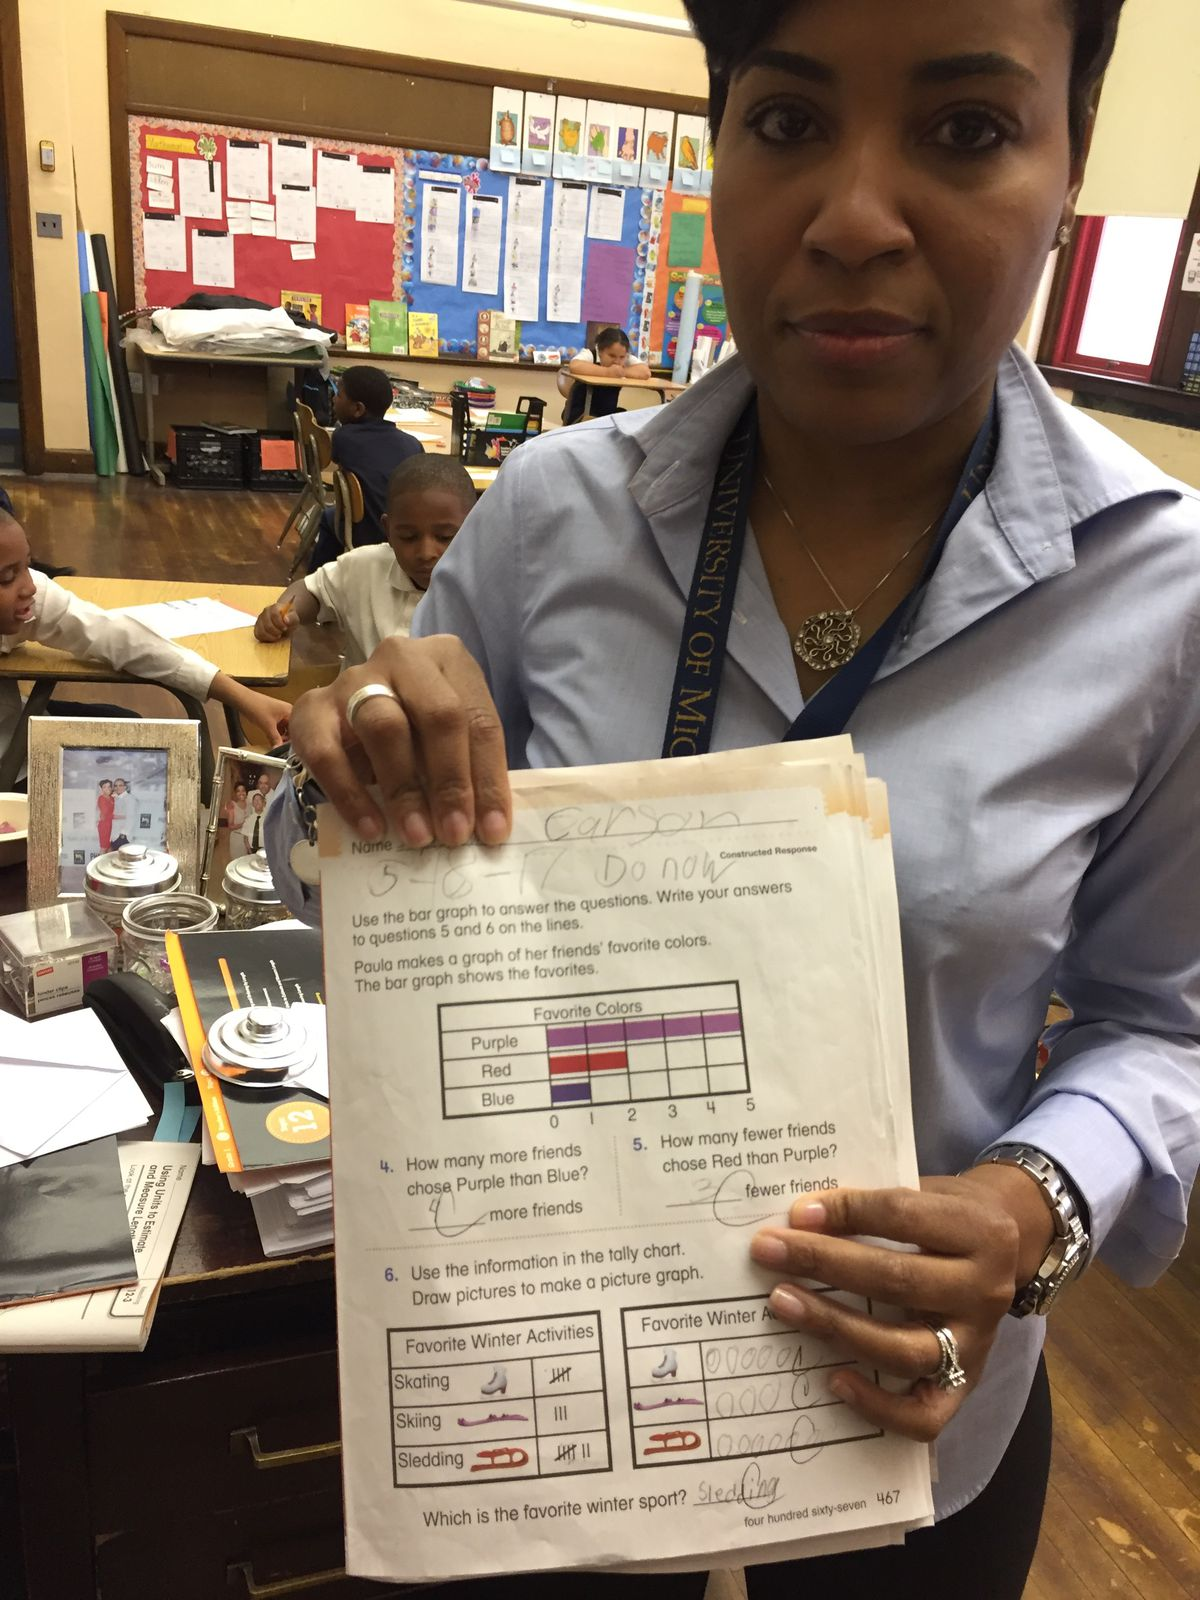 Rynell Sturkey, a first-grade teacher at the Paul Robeson Malcolm X Academy on Detroit's west side, said she didn't get the workbooks she's required to use to teach math until March this year.